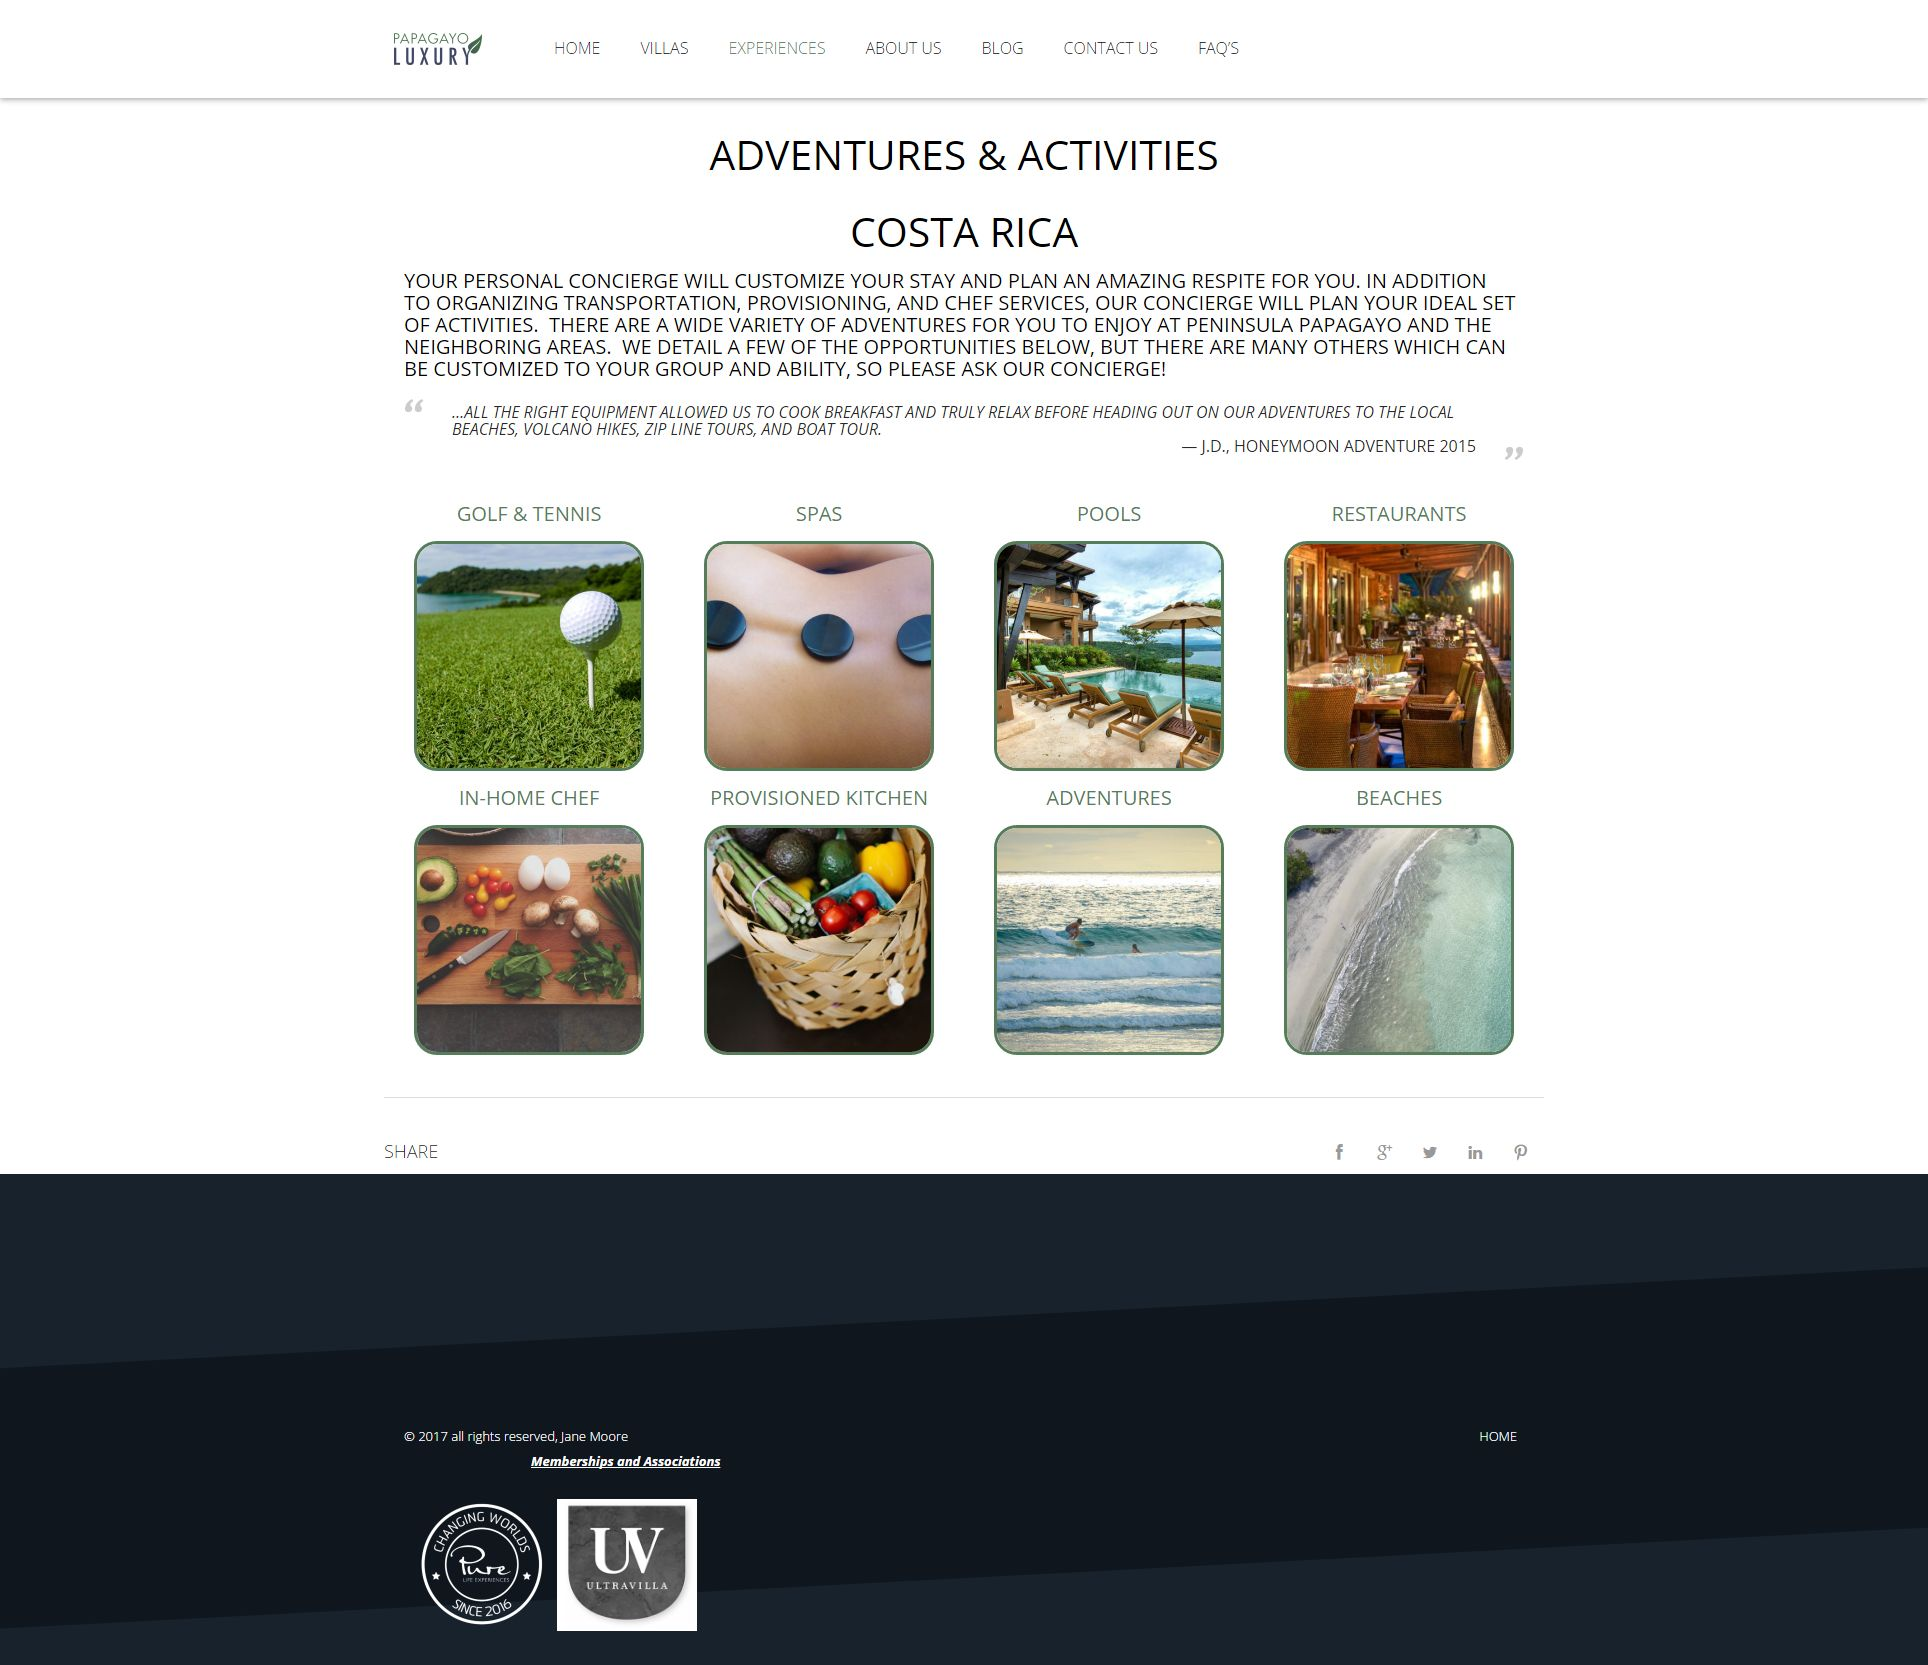 Example of New Experiences Page